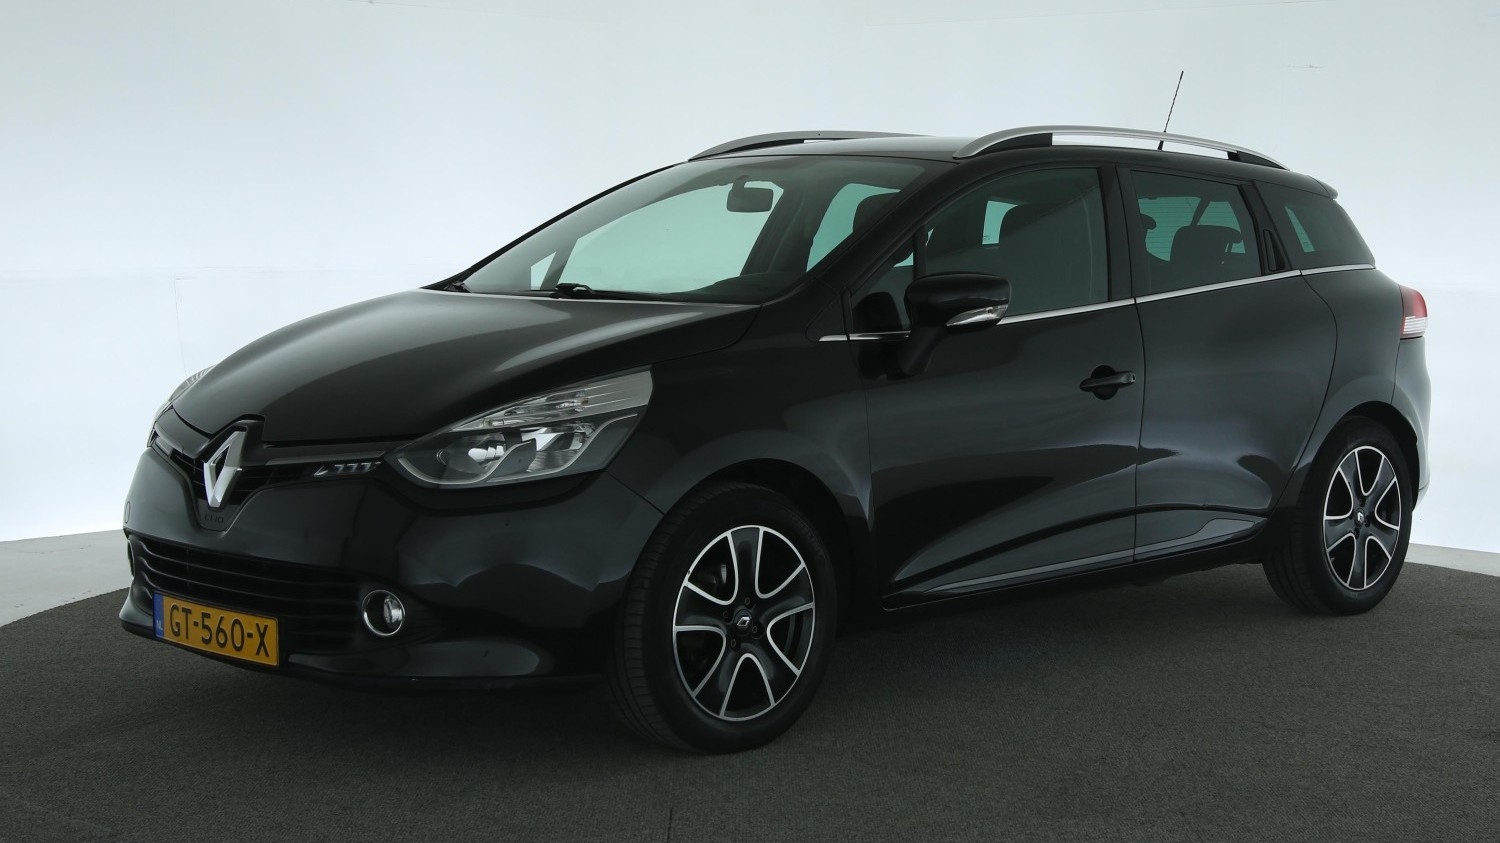 Renault Clio Station 2015 GT-560-X 1